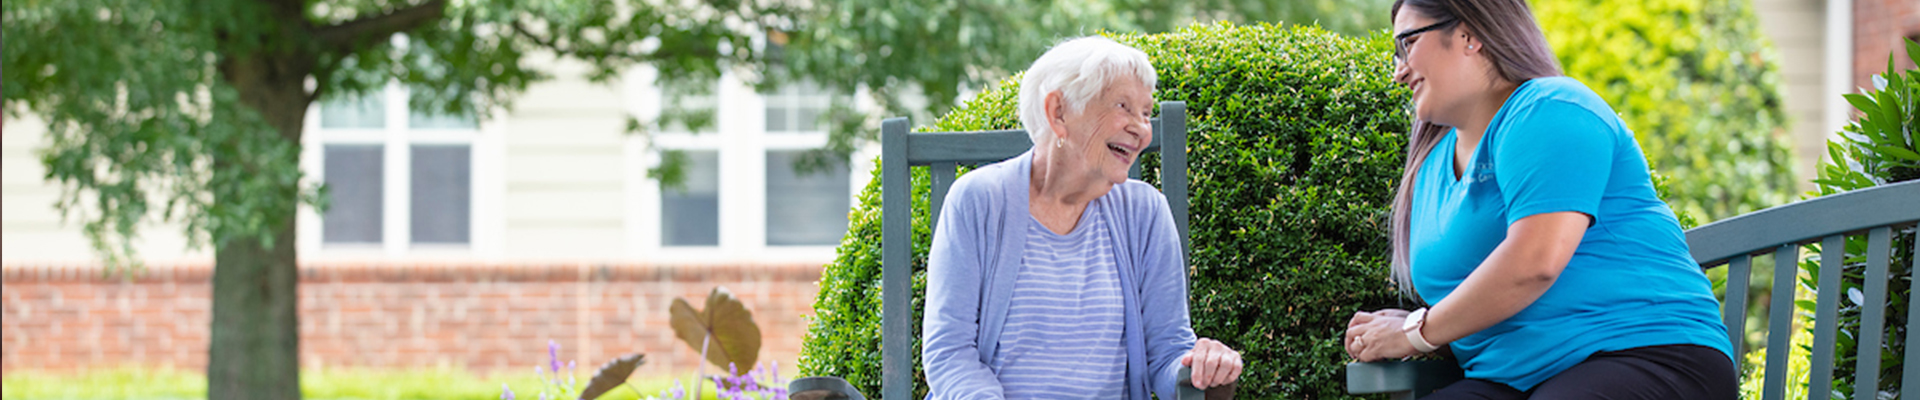 Assisted Living in Private Apartment Homes The Woodlands